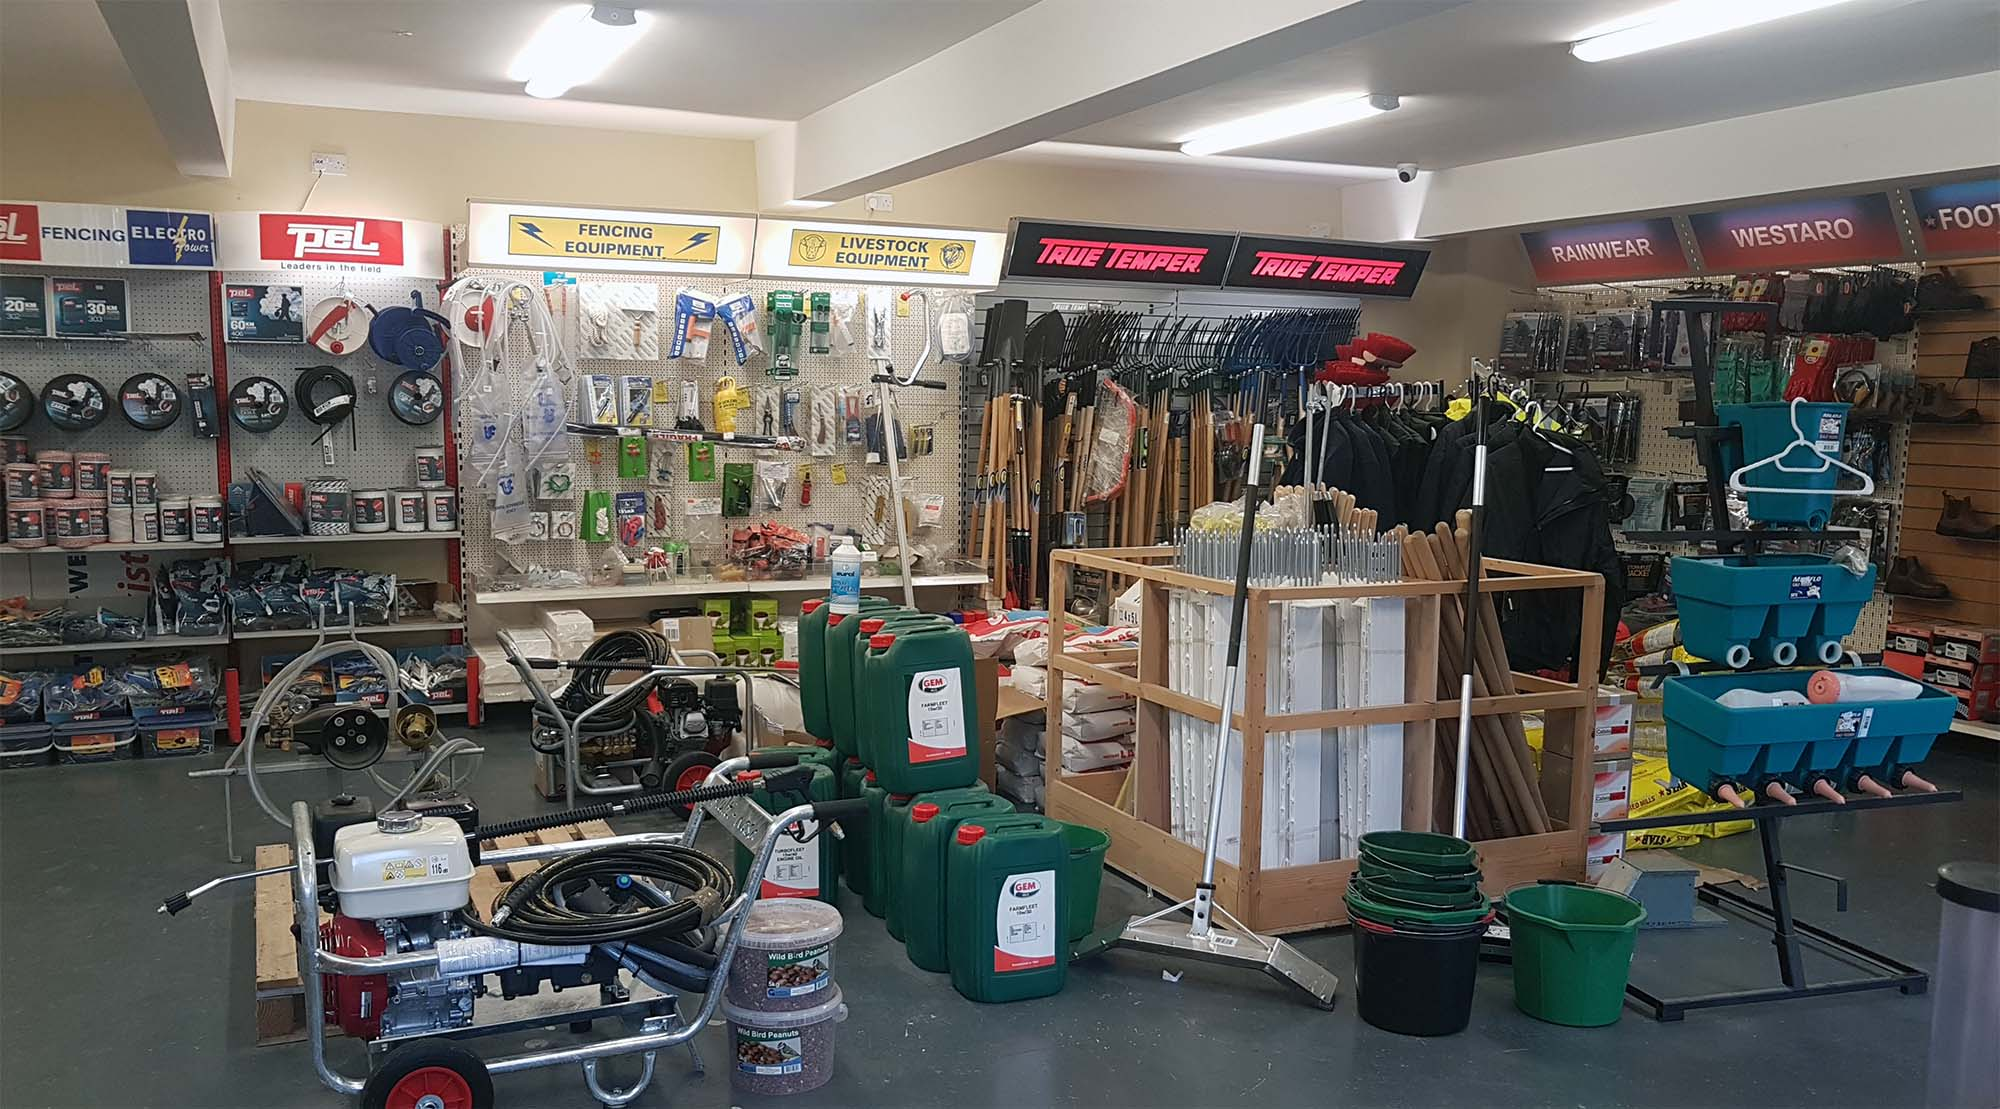 Tullamore Agri Supplies shop in Tullamore, Co. Offaly